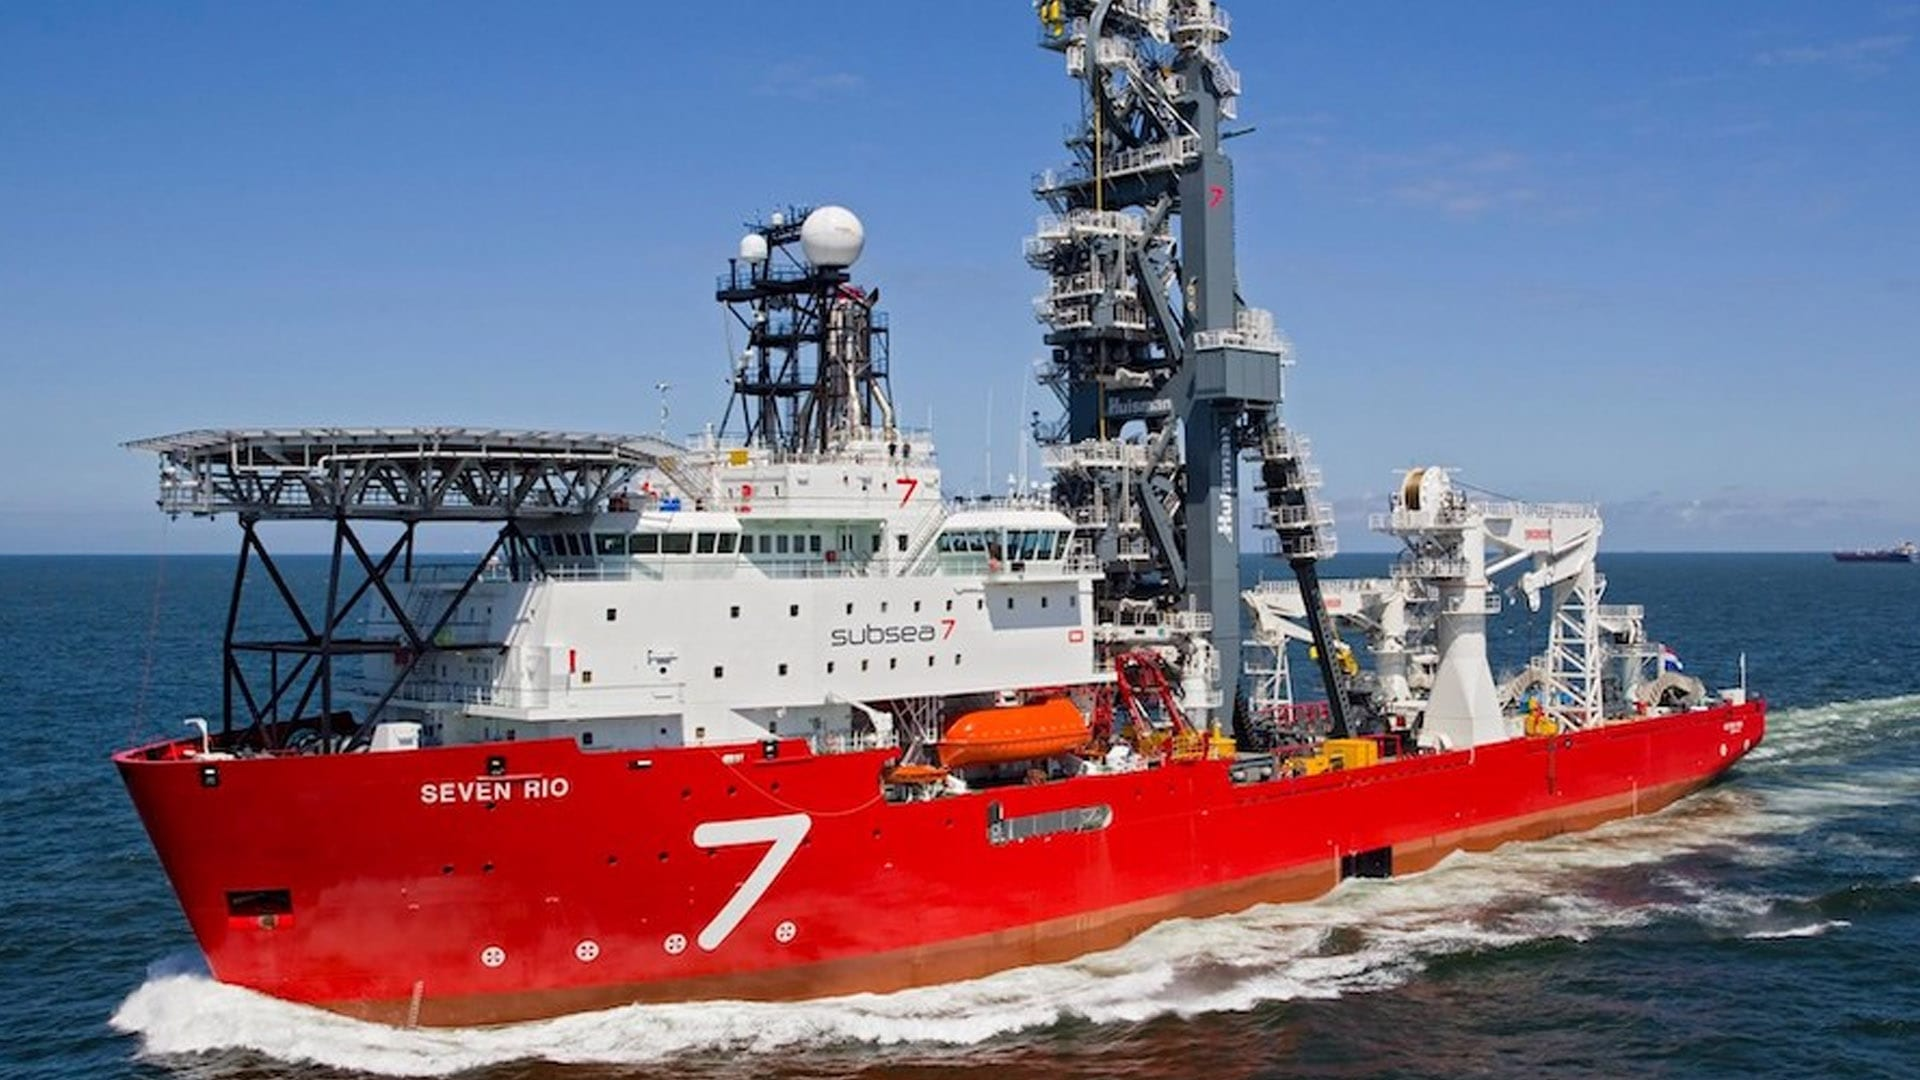 Subsea 7 and Schlumberger alliance awarded Senegal contract